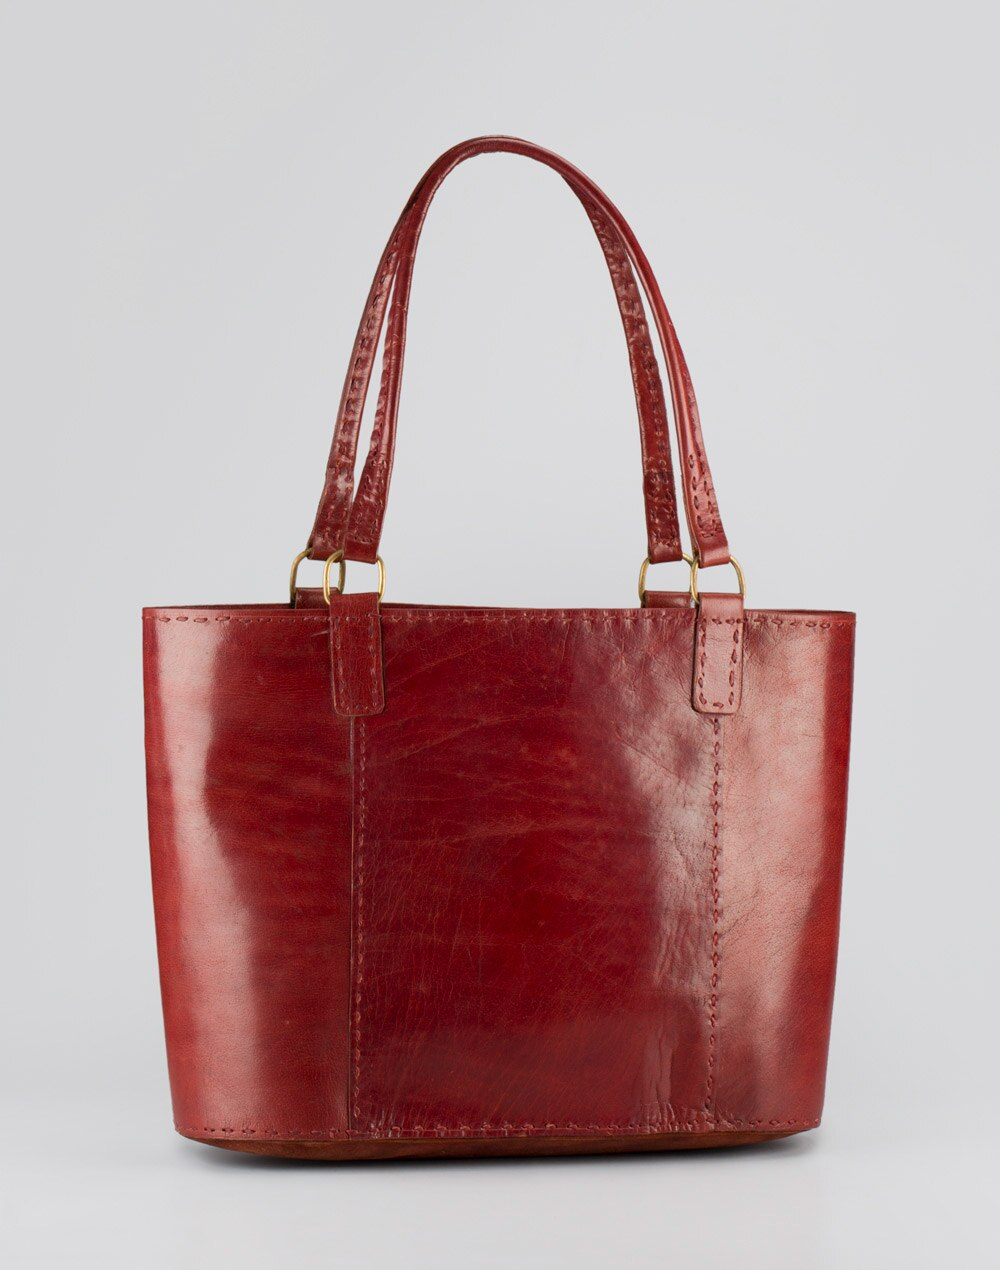 0a1c077cccf Buy Fabindia Brown Leather C272 Tote Bag Online in India – Fabindia.com